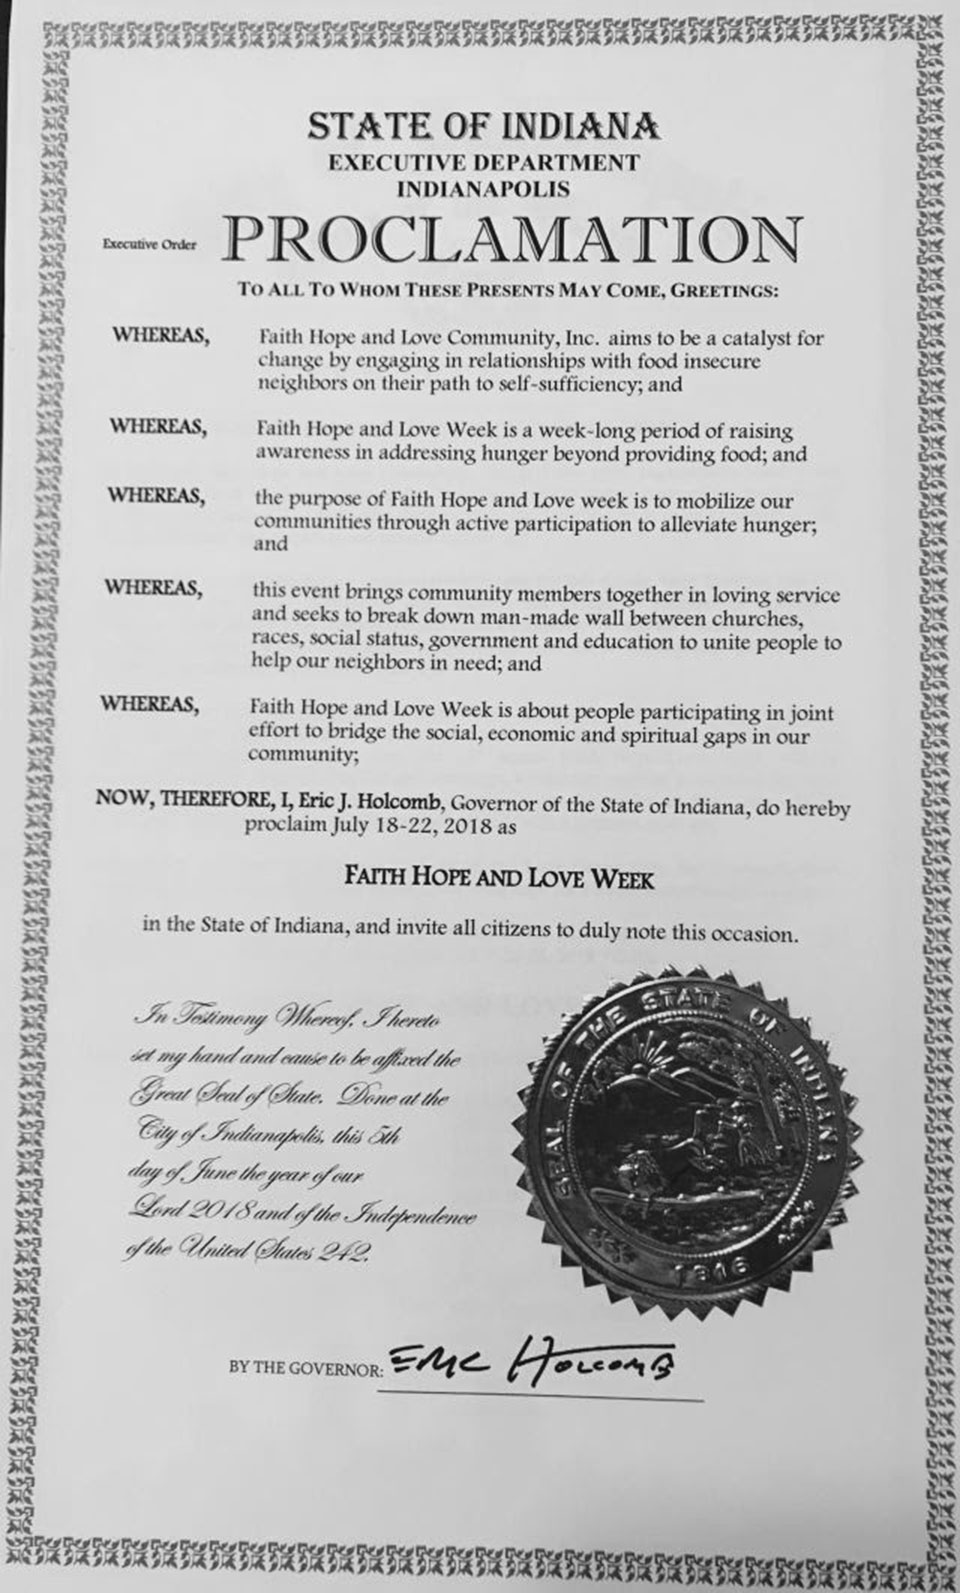 The Governor proclaims FHL Week in state of Indiana